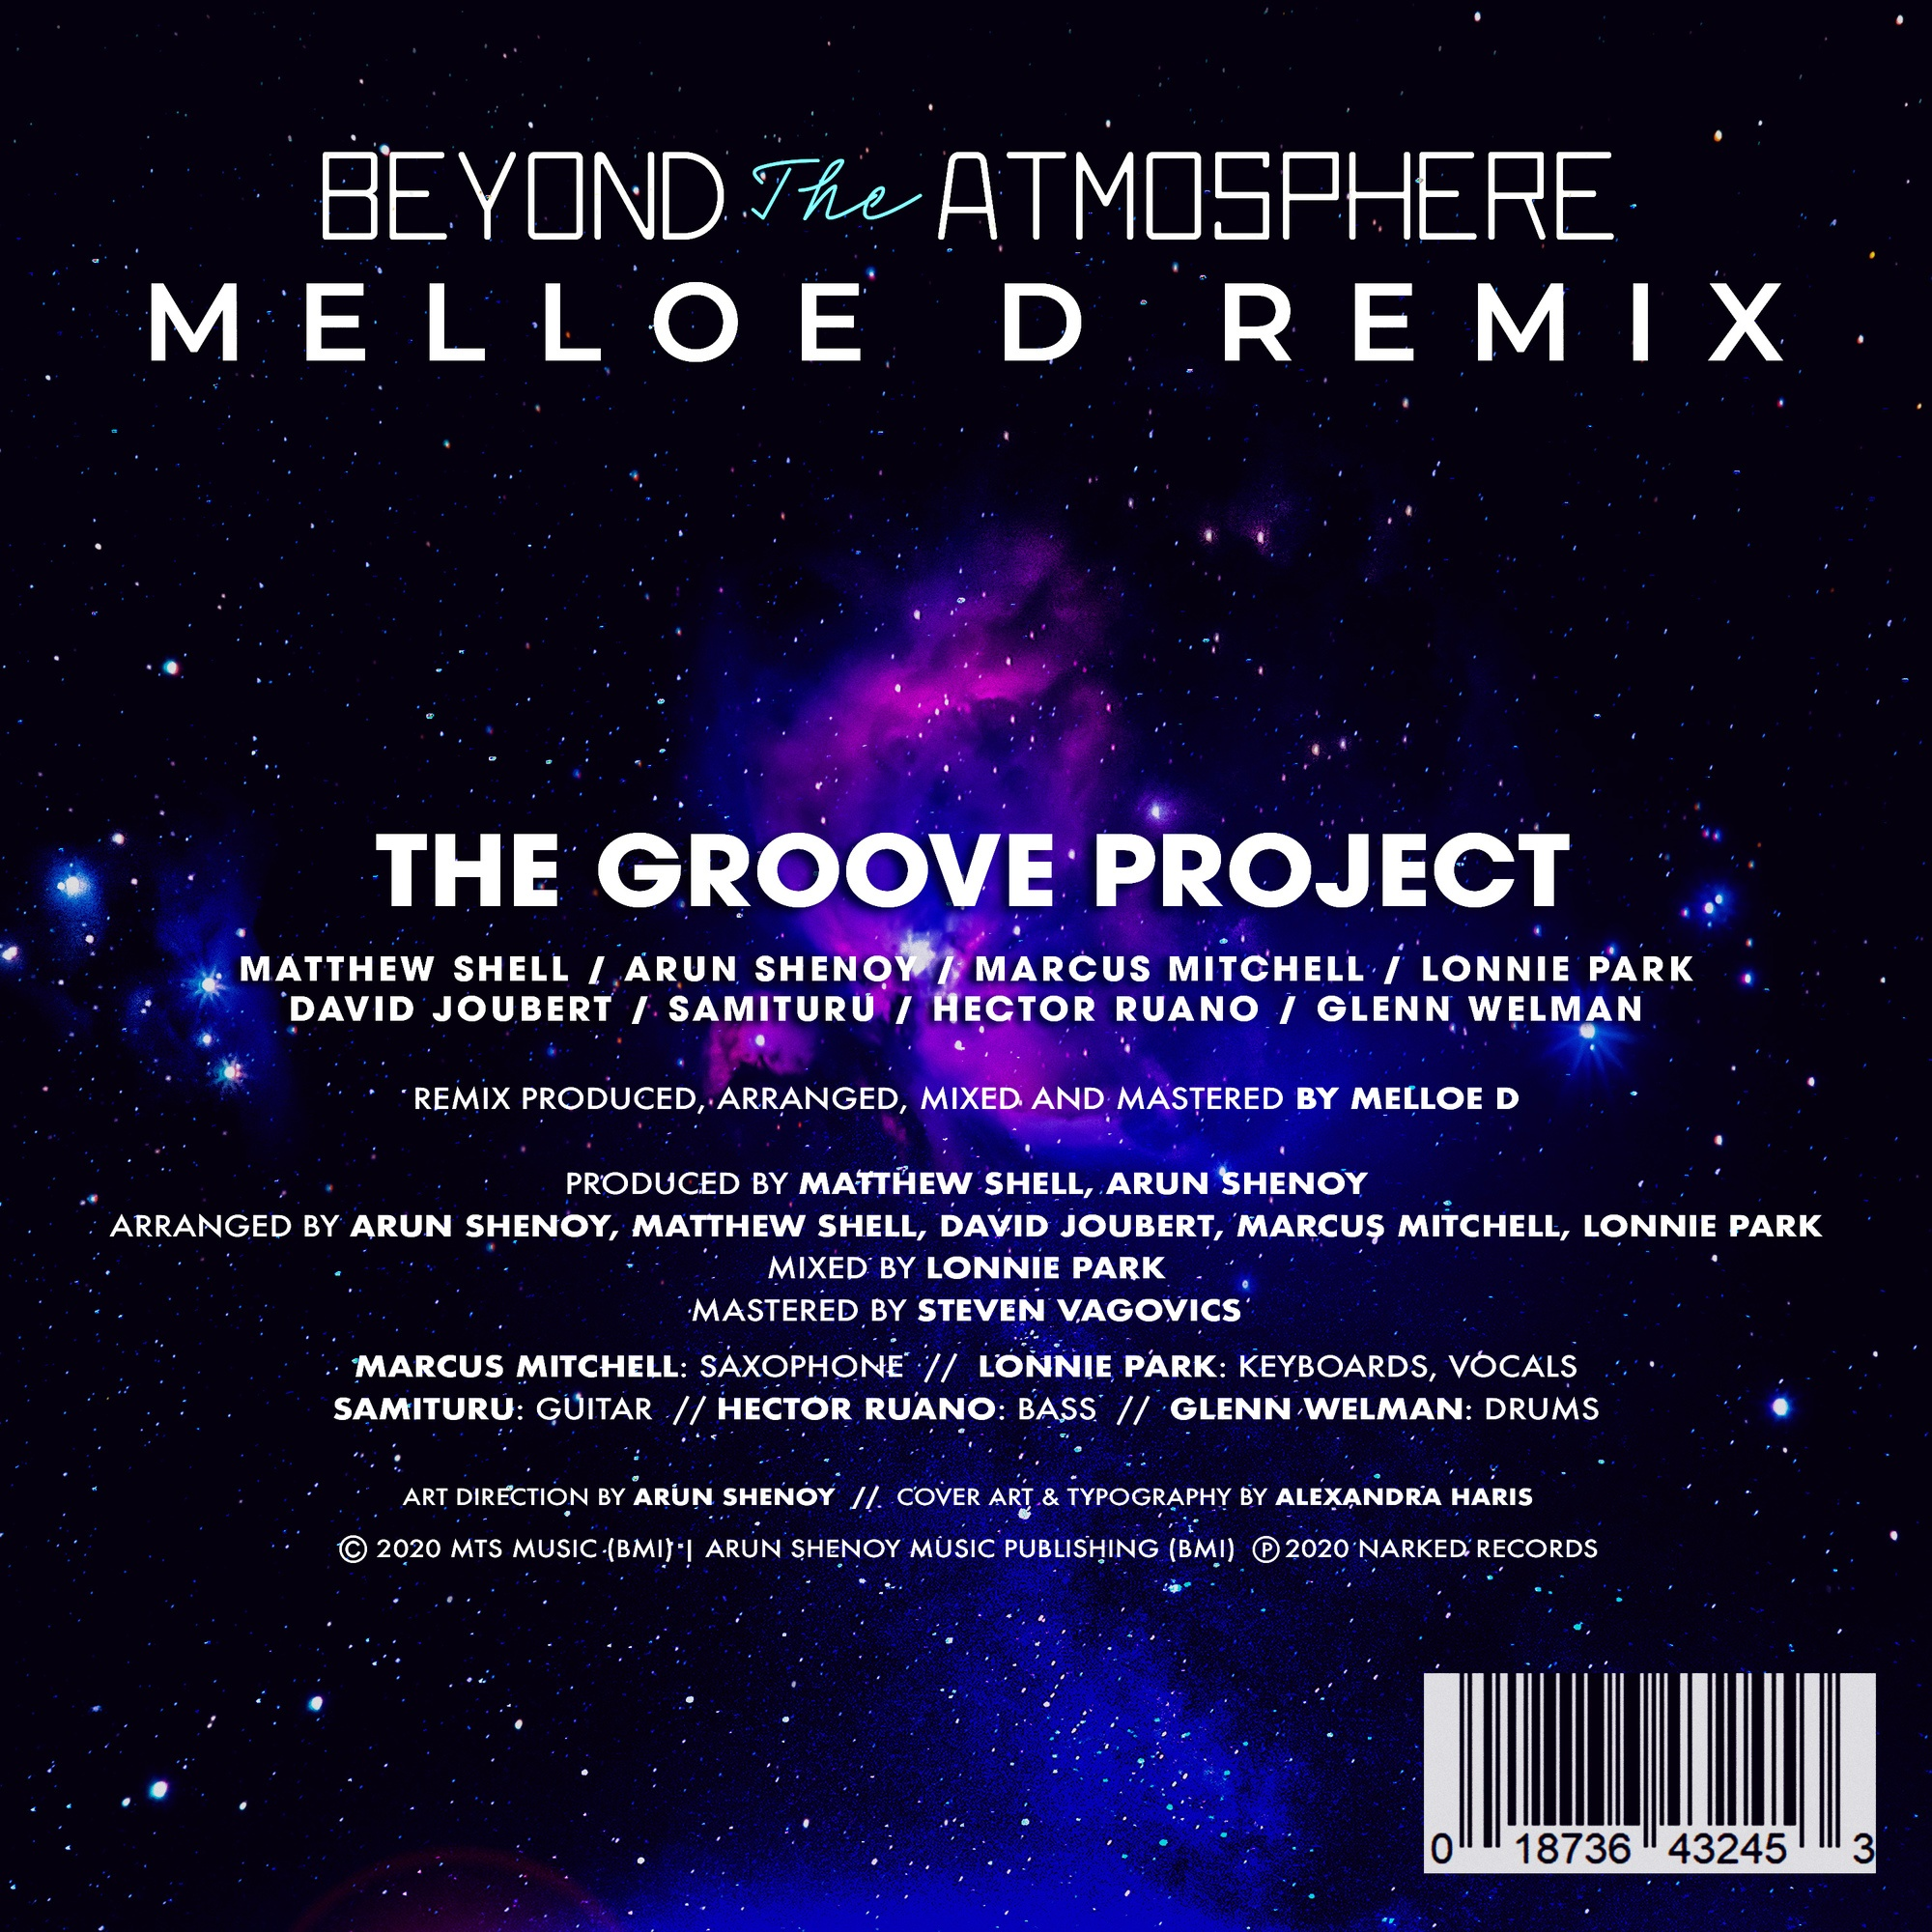 Beyond the Atmosphere Melloe D Remix- Credits Sheet